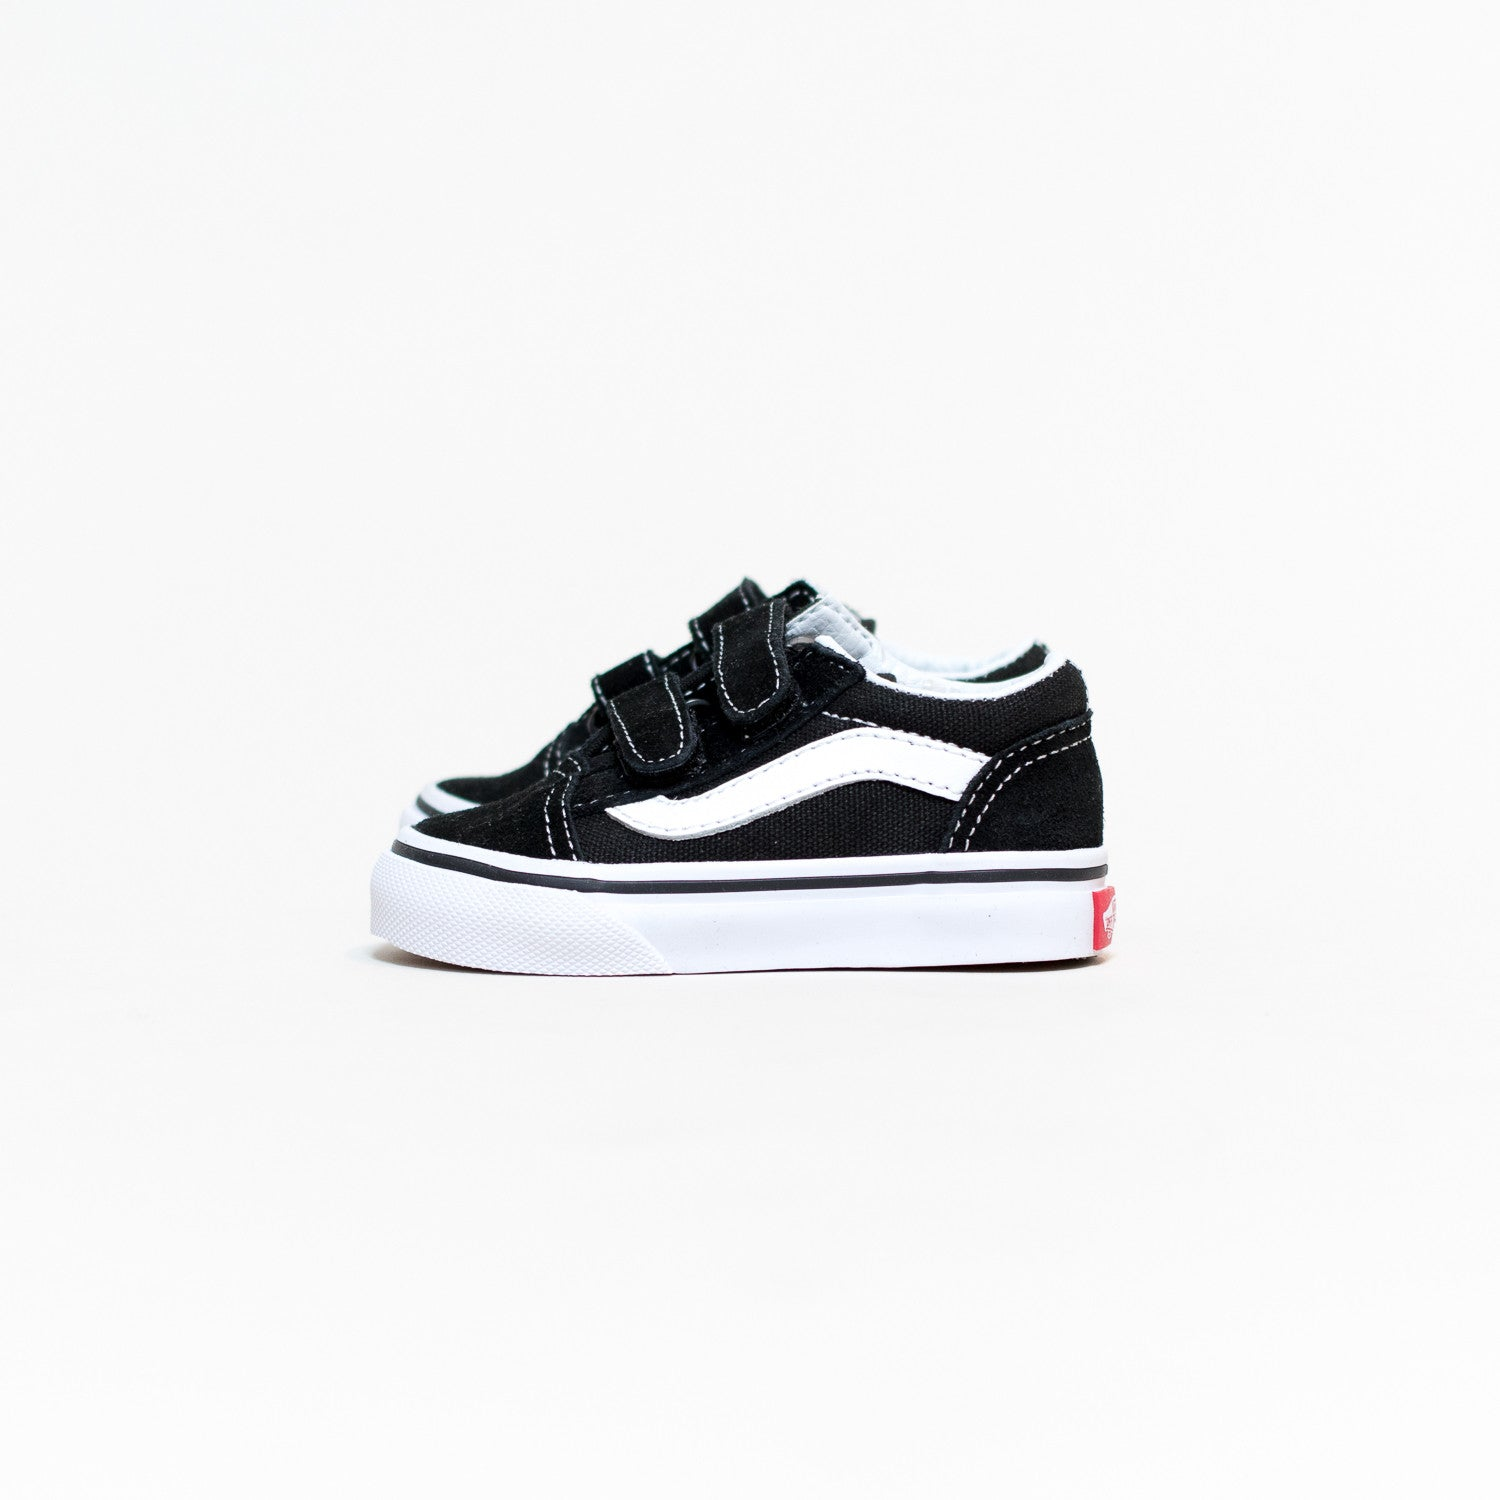 Kids Old Skool V - black/true white - KID - 1